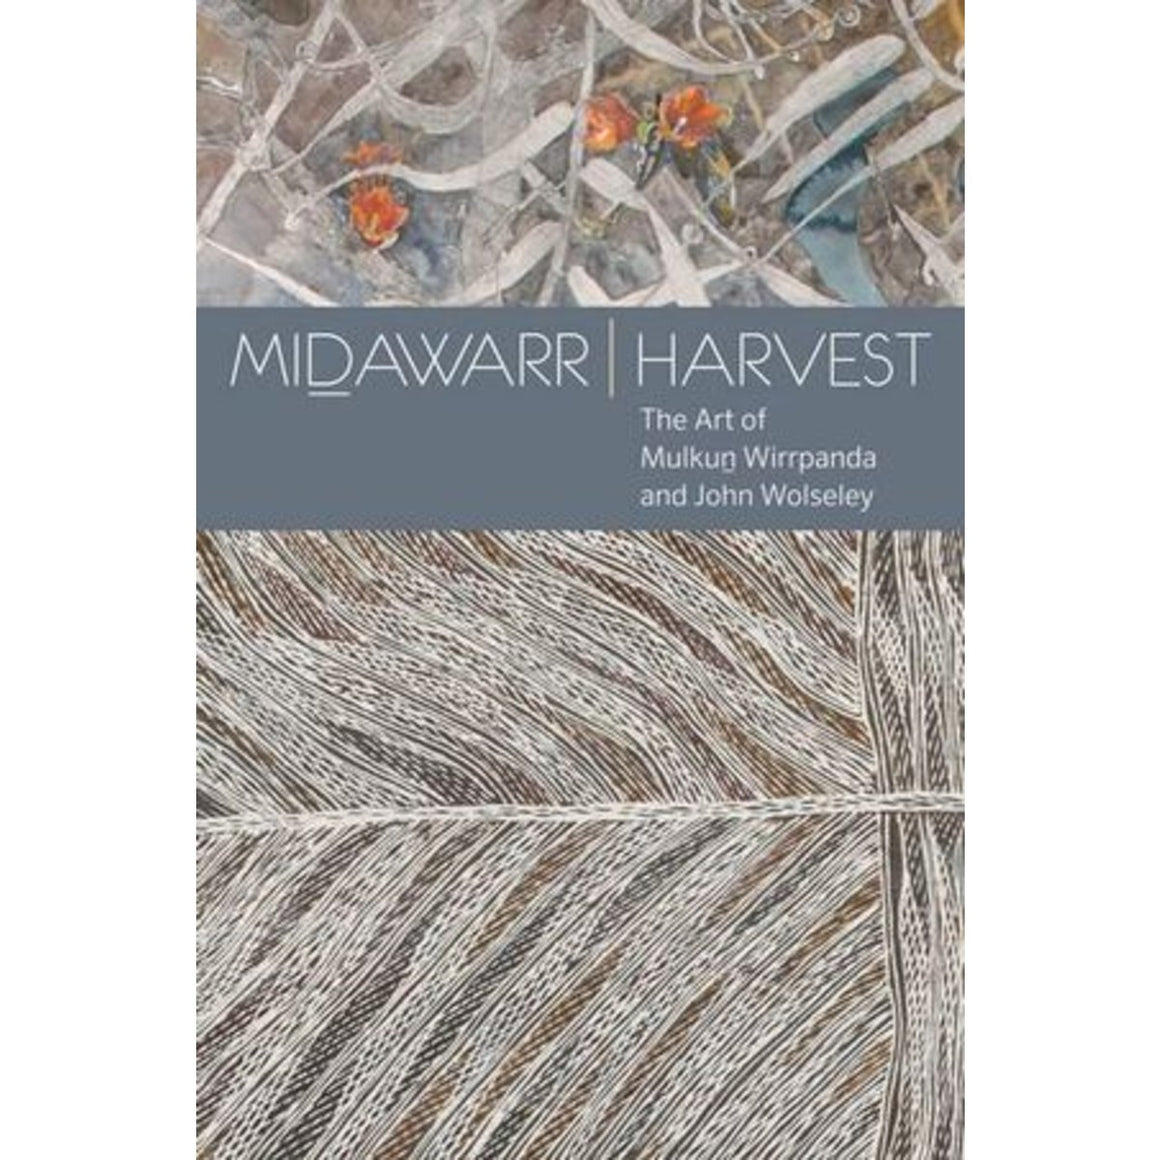 Image featuring a book cover which includes two different styles of artworks which both includes the image of leaves, it includes a grey banner which has white text saying Midawarr Harvest: The art of Mulkun Wirrpanda and John Wolseley